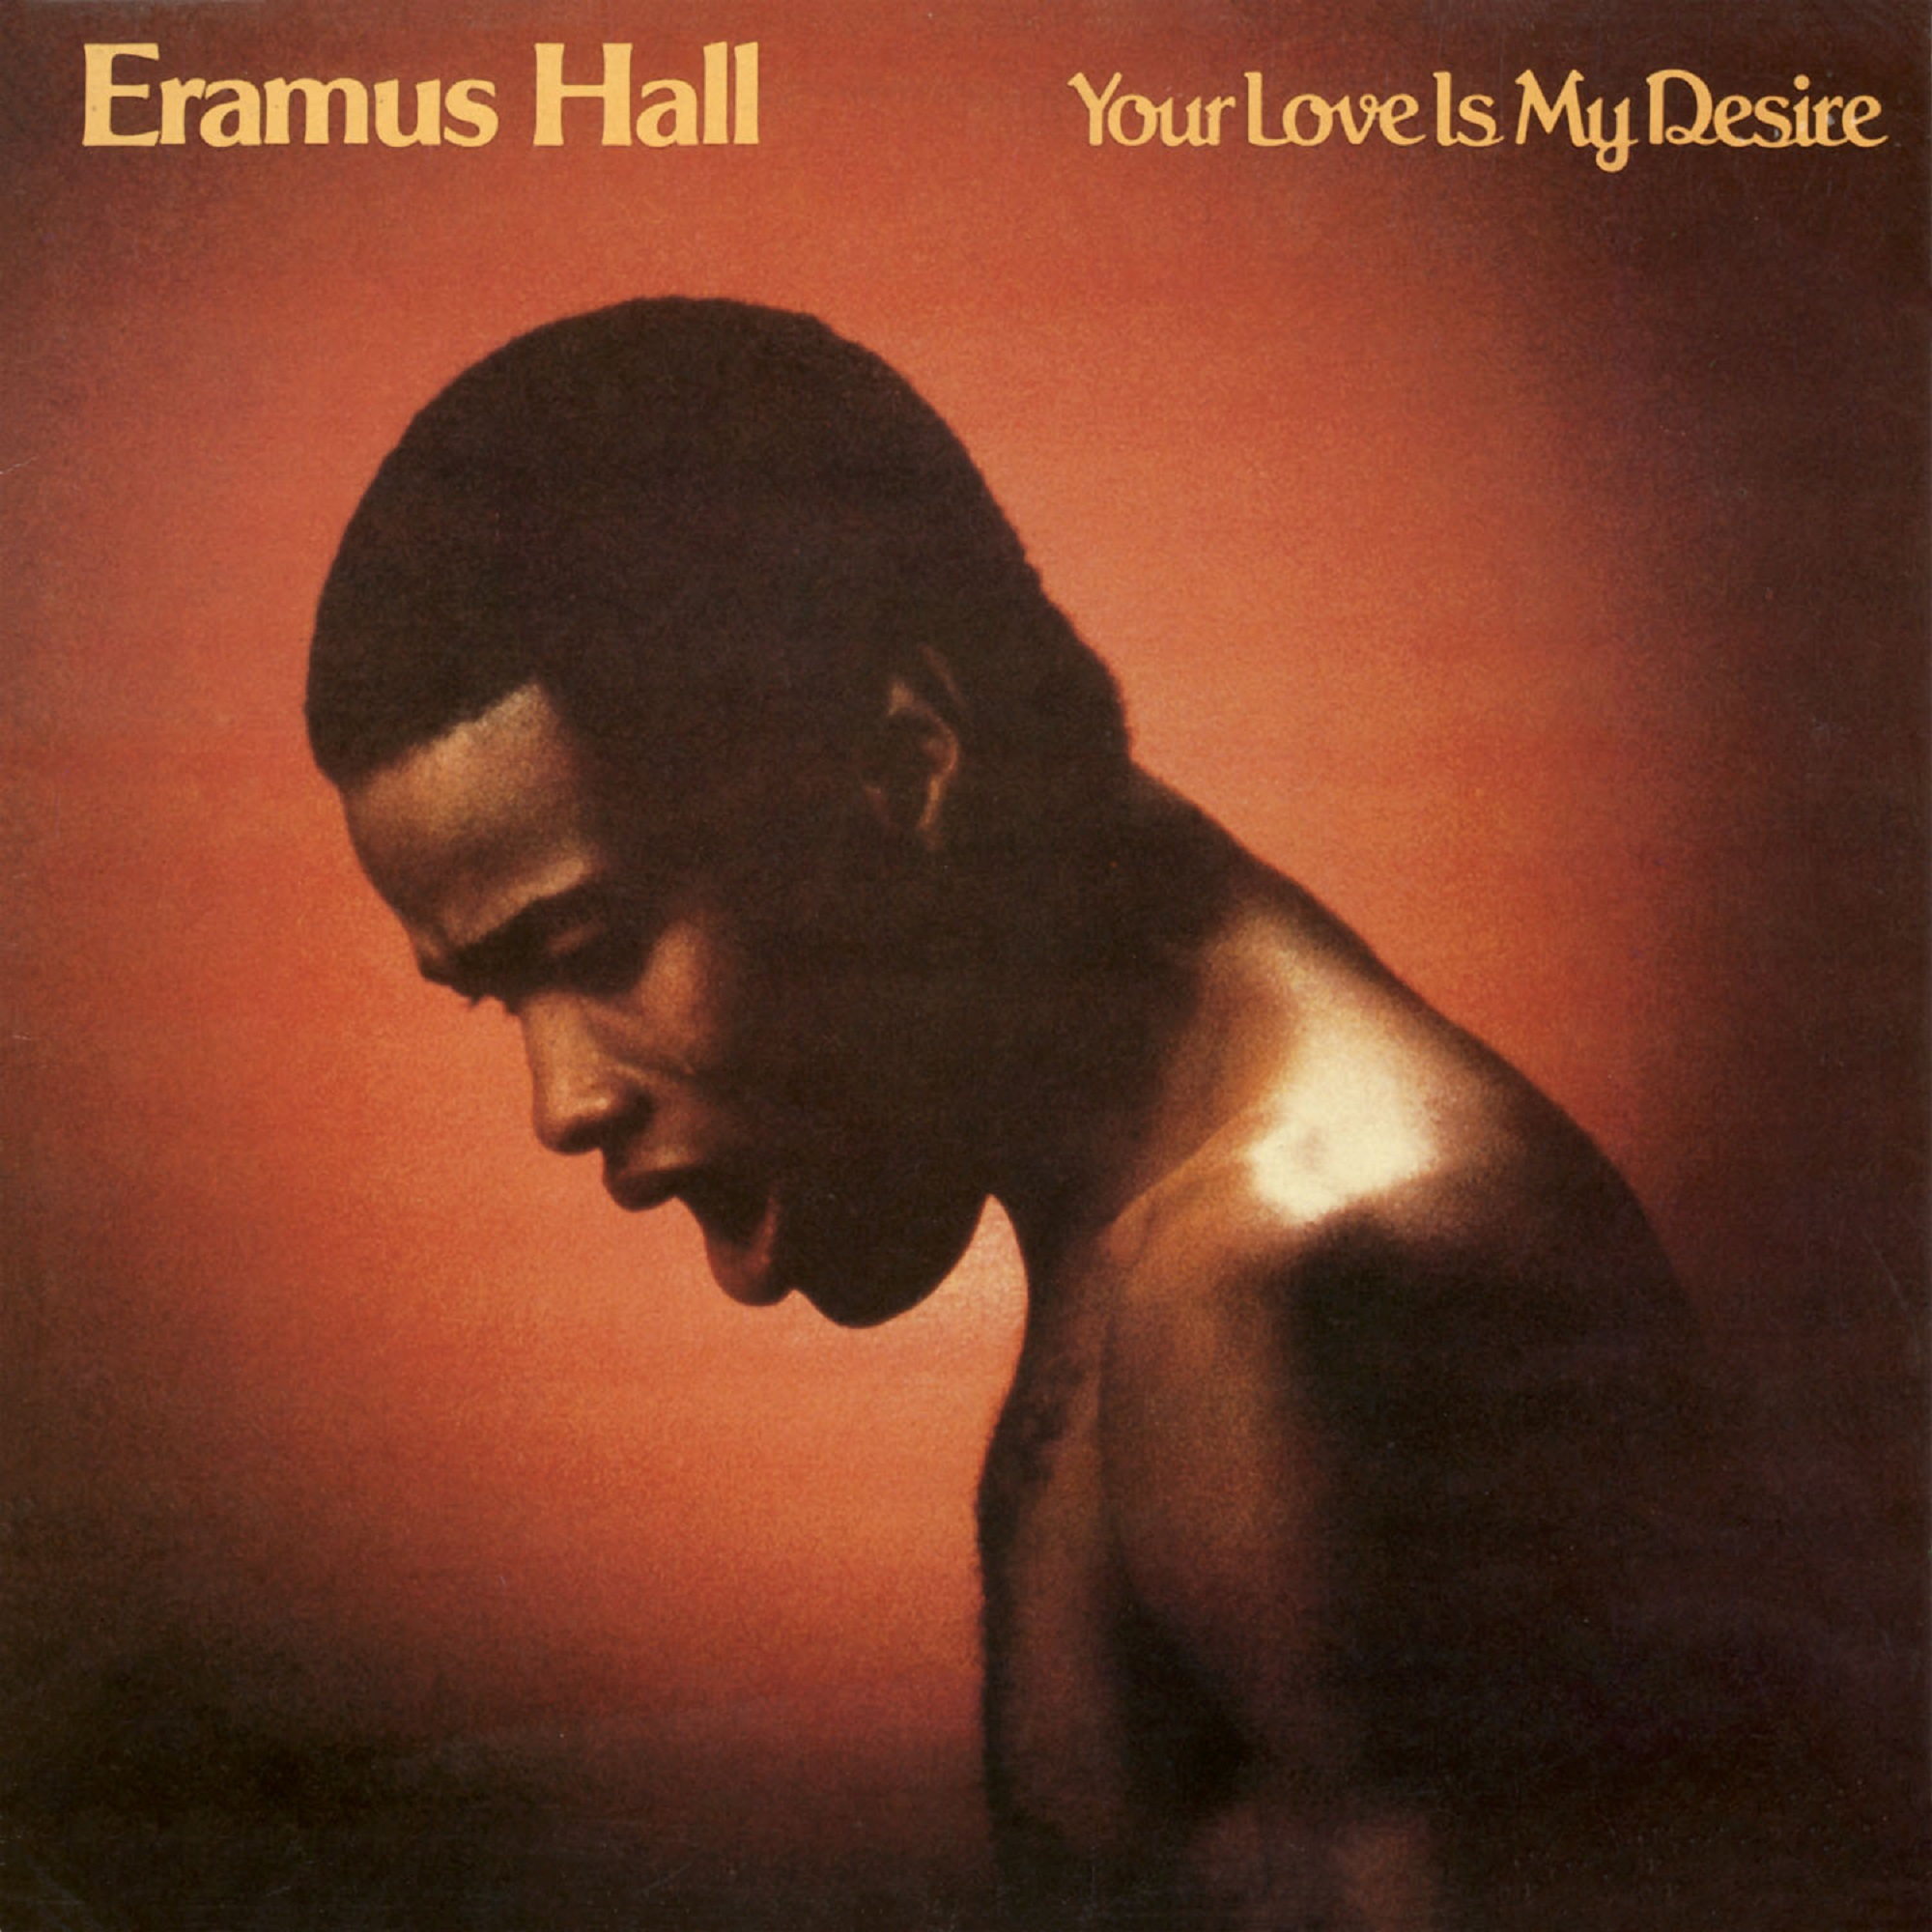 Eramus Hall/YOUR LOVE LP